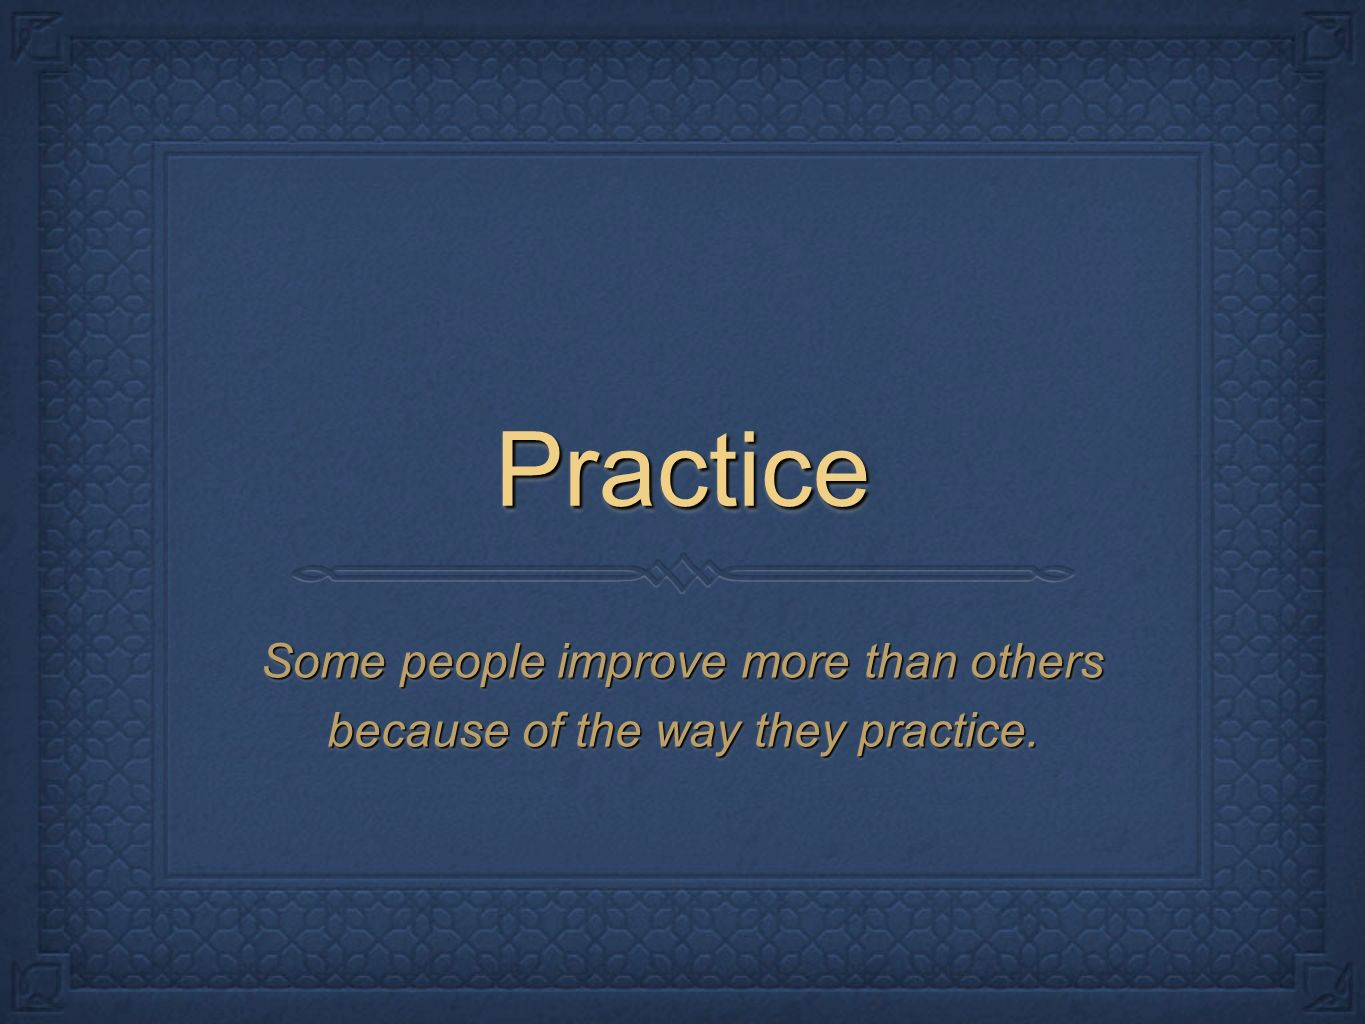 PracticePractice Some people improve more than others because of the way they practice.